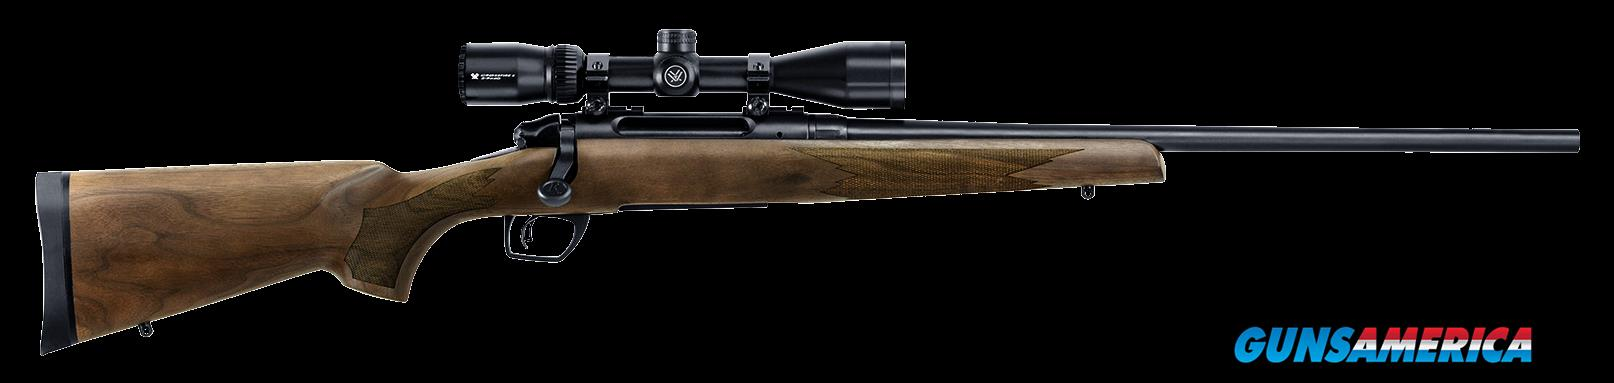 "Remington Firearms 85890 783 with Scope Bolt 308 Winchester/7.62 NATO 22"" 4+1 American Walnut Stk  Guns > Rifles > R Misc Rifles"